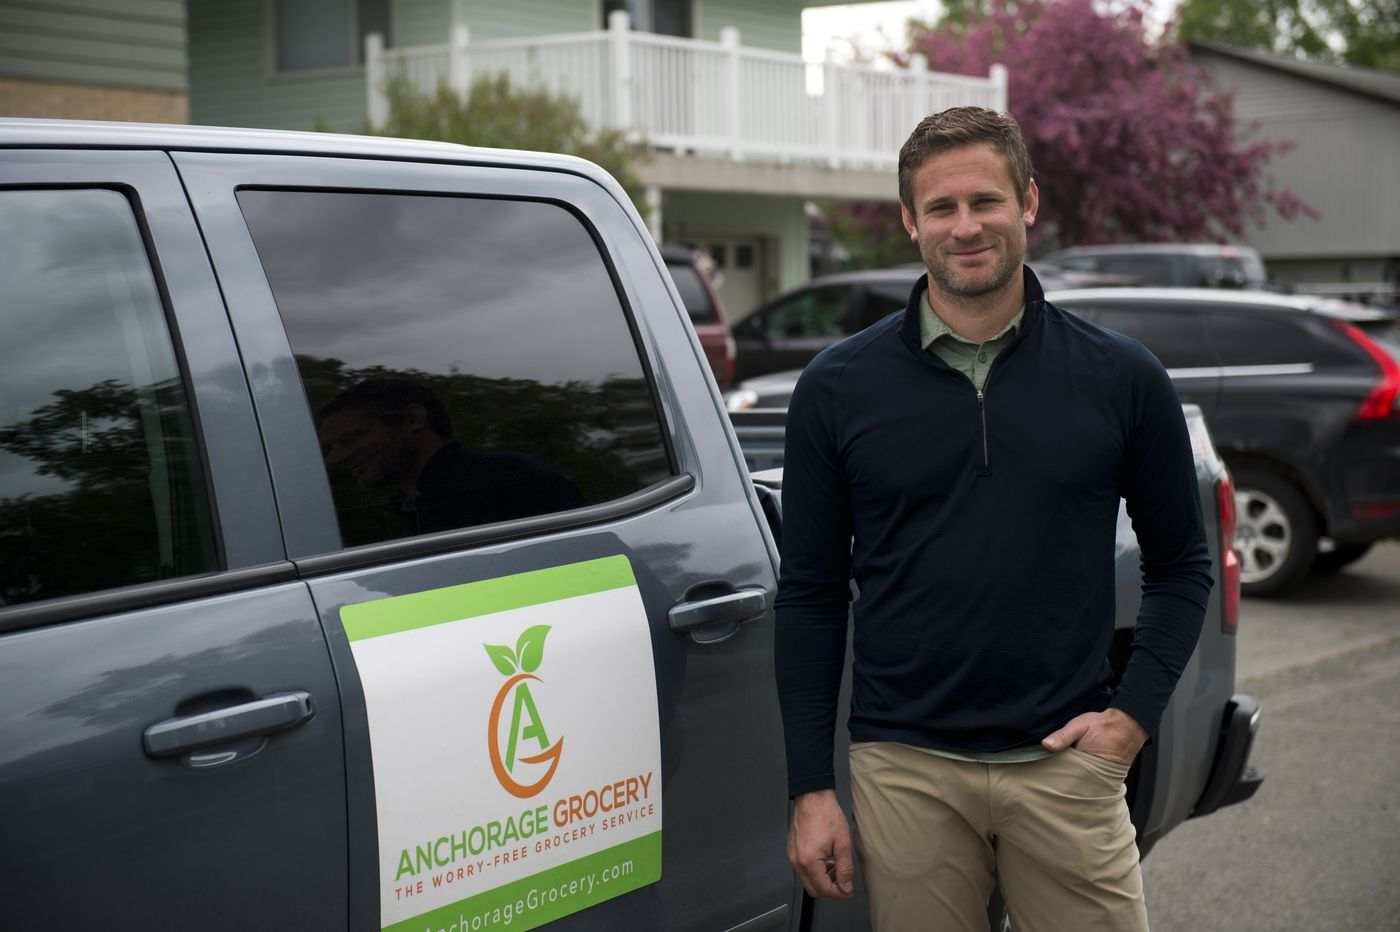 Seth Stetson operates Anchorage Grocery which delivers grocery orders made online. Photographed in Anchorage on June 2, 2020. (Marc Lester / ADN)